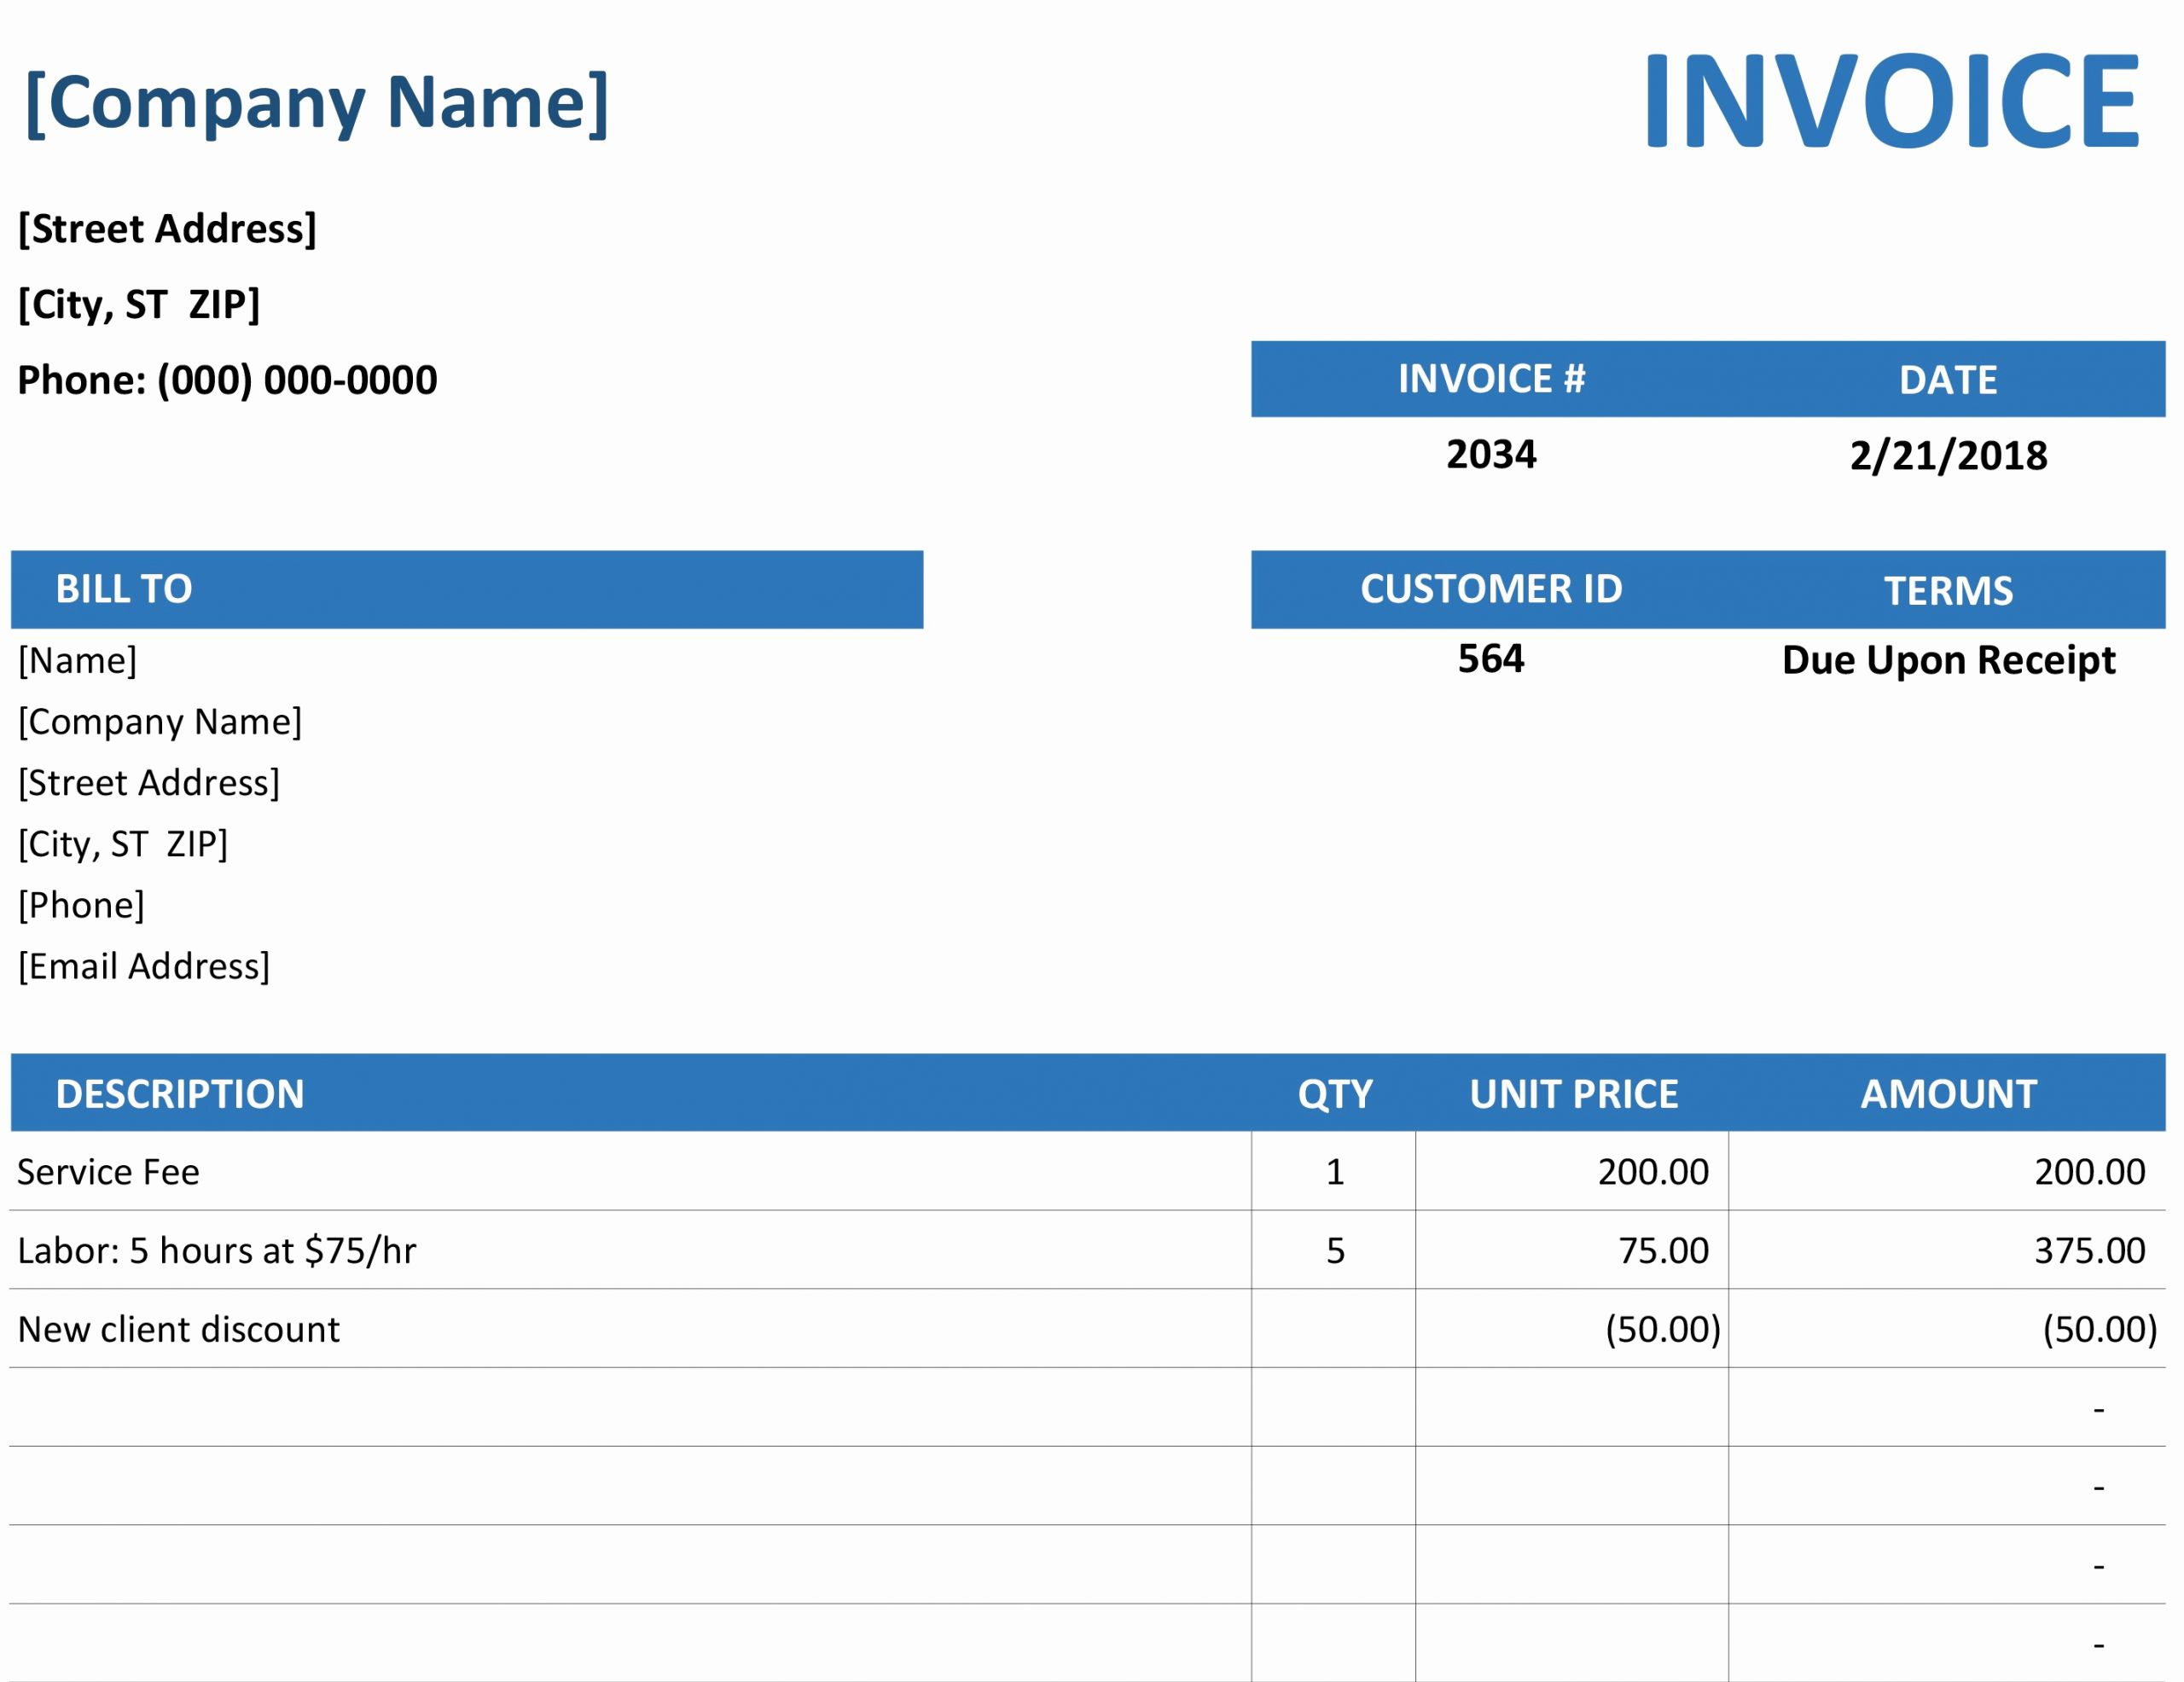 Microsoft Access Invoice Template Inspirational Invoices Fice